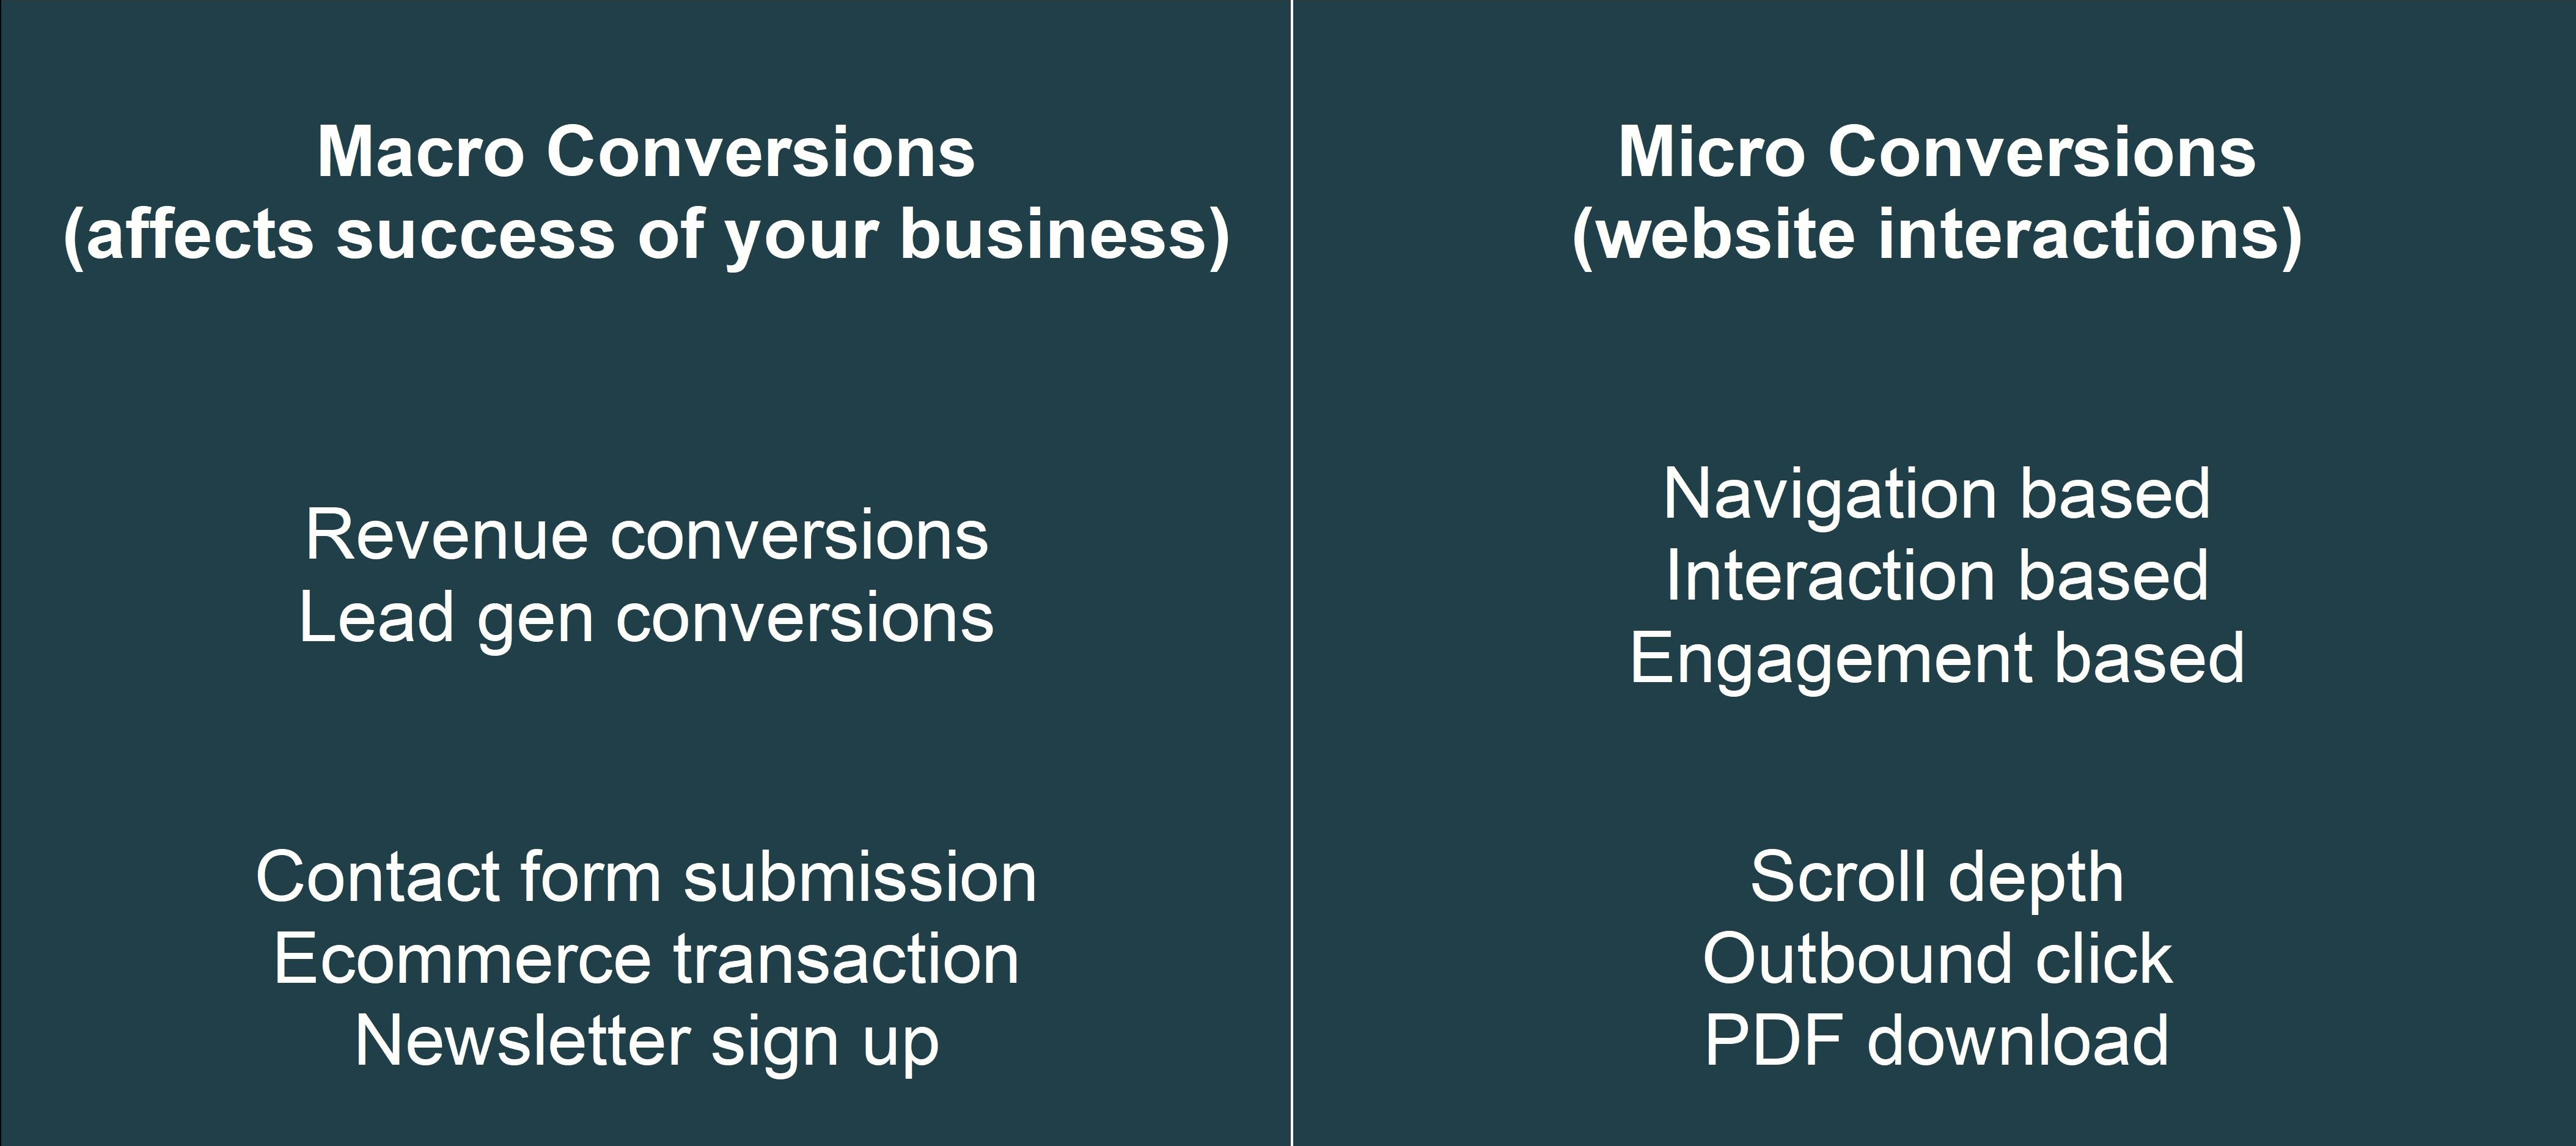 What are macro and micro conversions